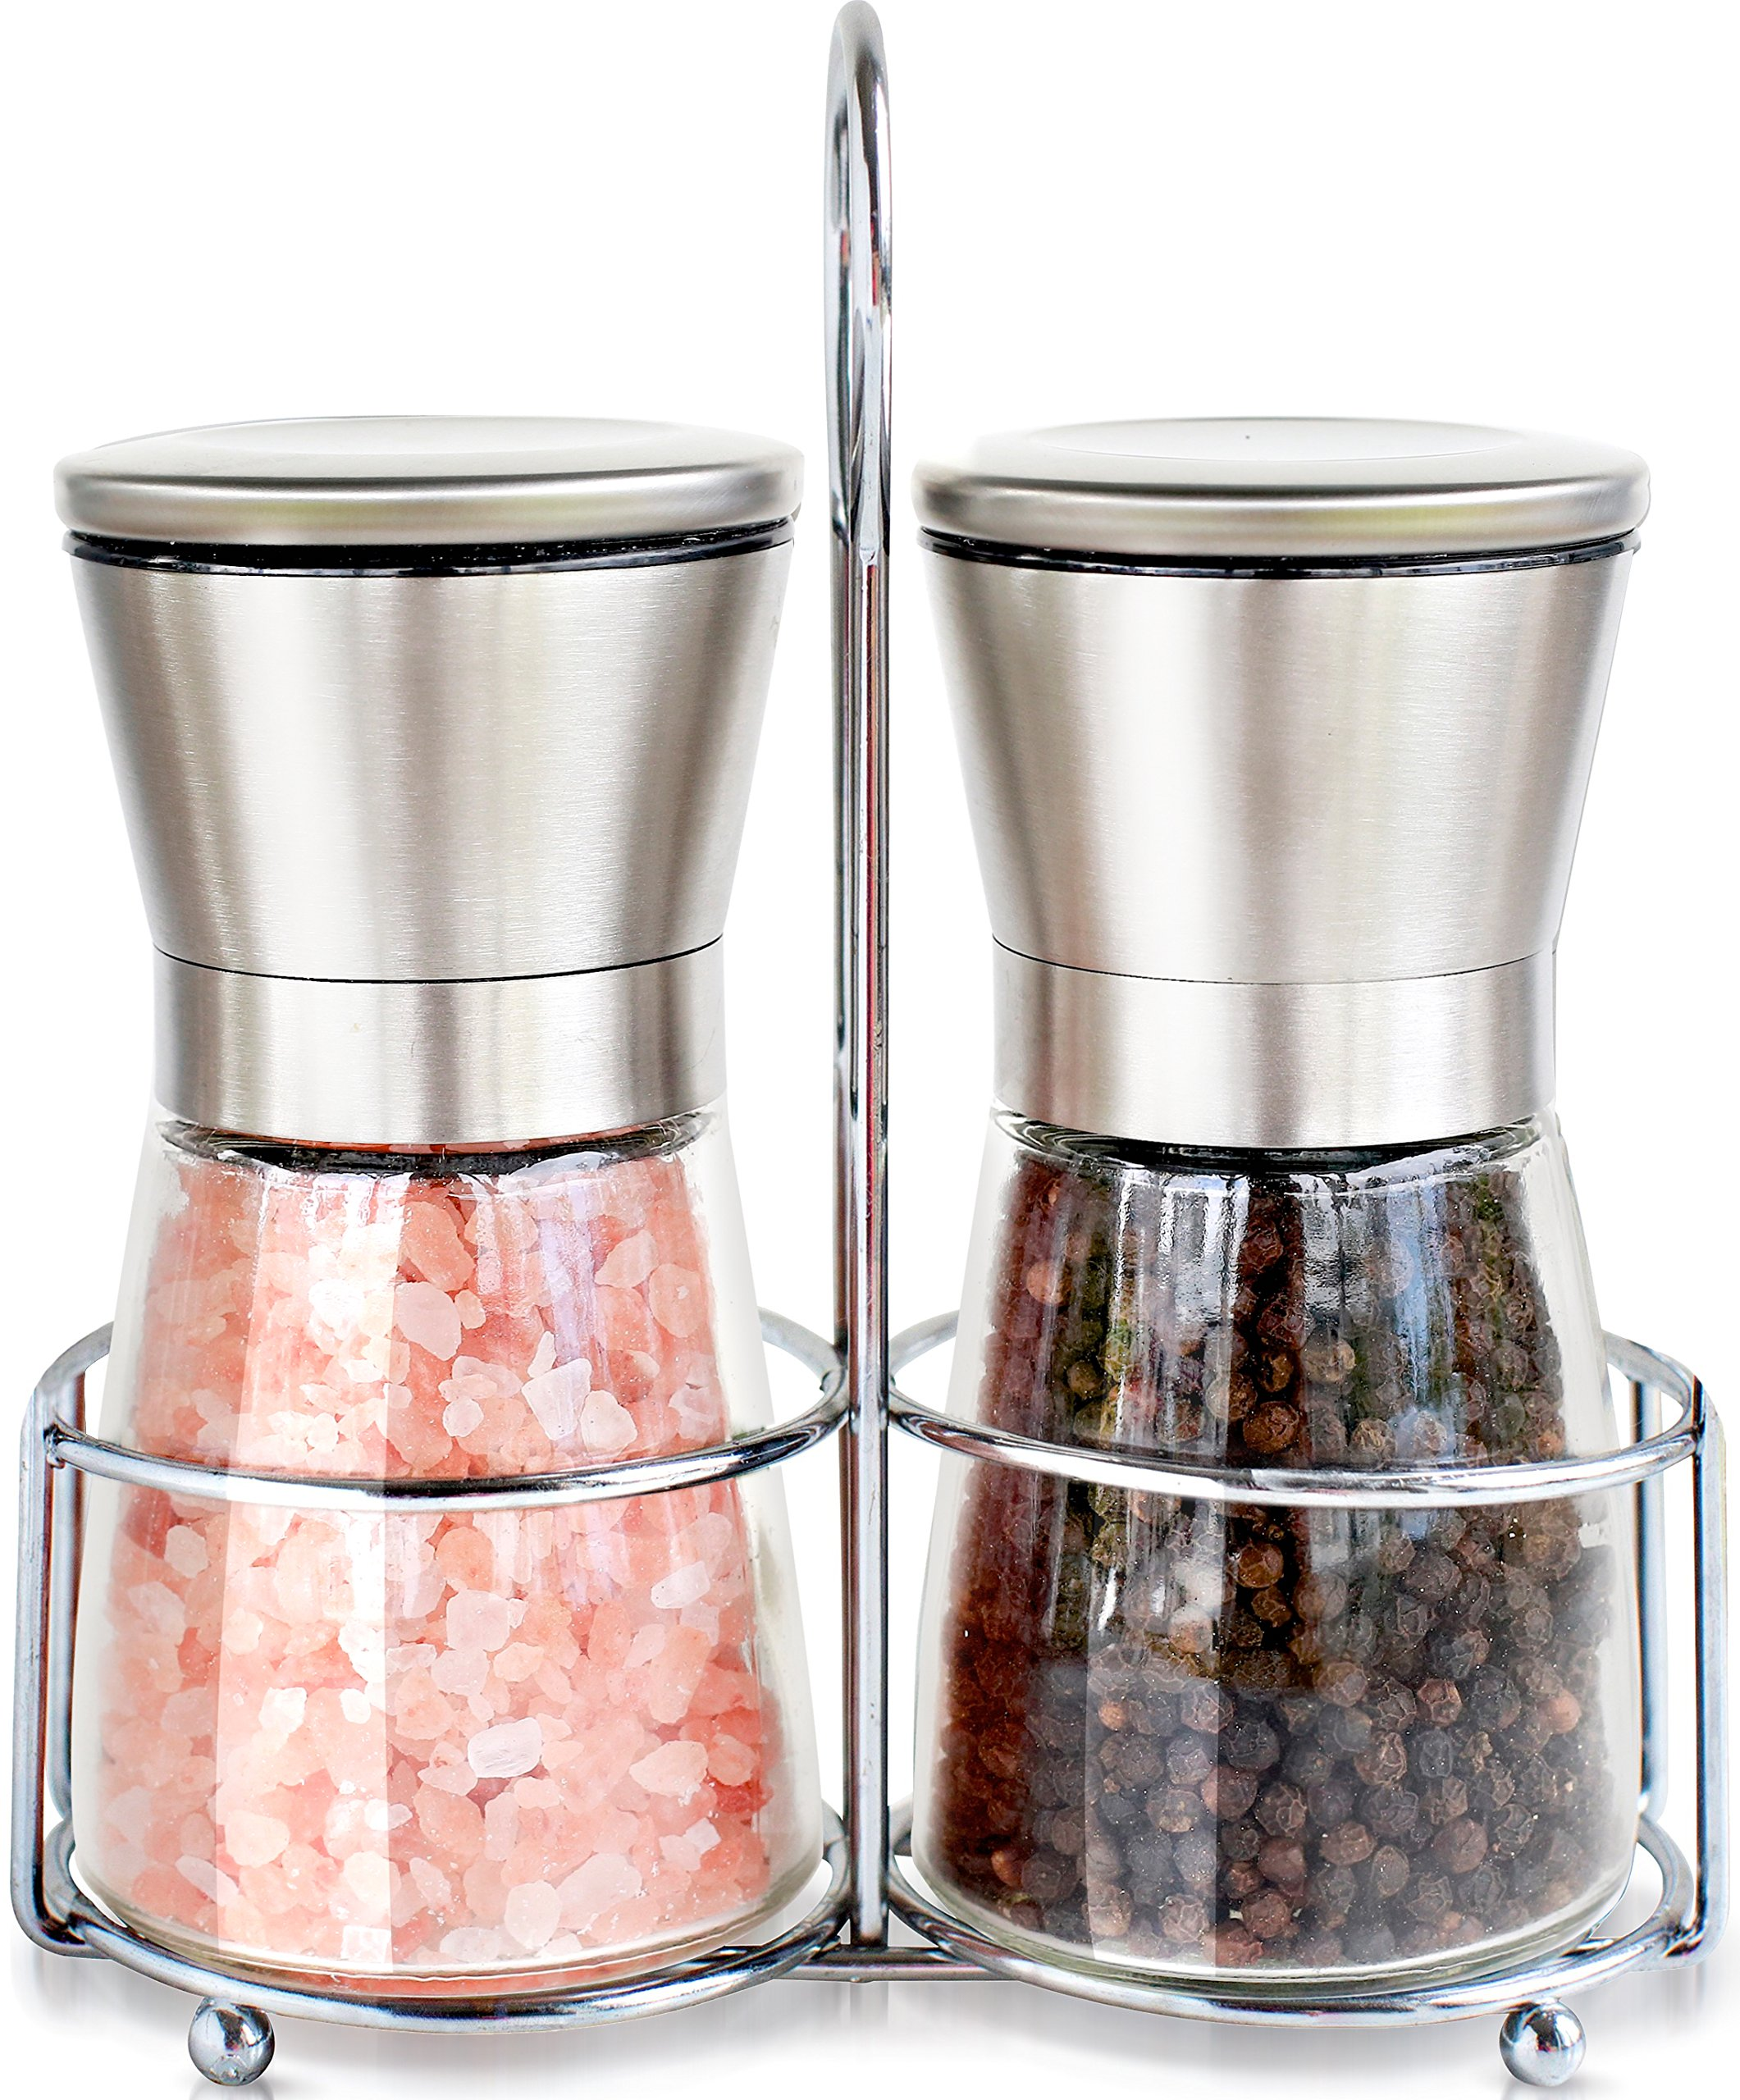 cheerful cool salt and pepper shakers. Premium Stainless Steel Salt and Pepper Grinder Mills Set With Stand  Shakers Best Rated in Sets Helpful